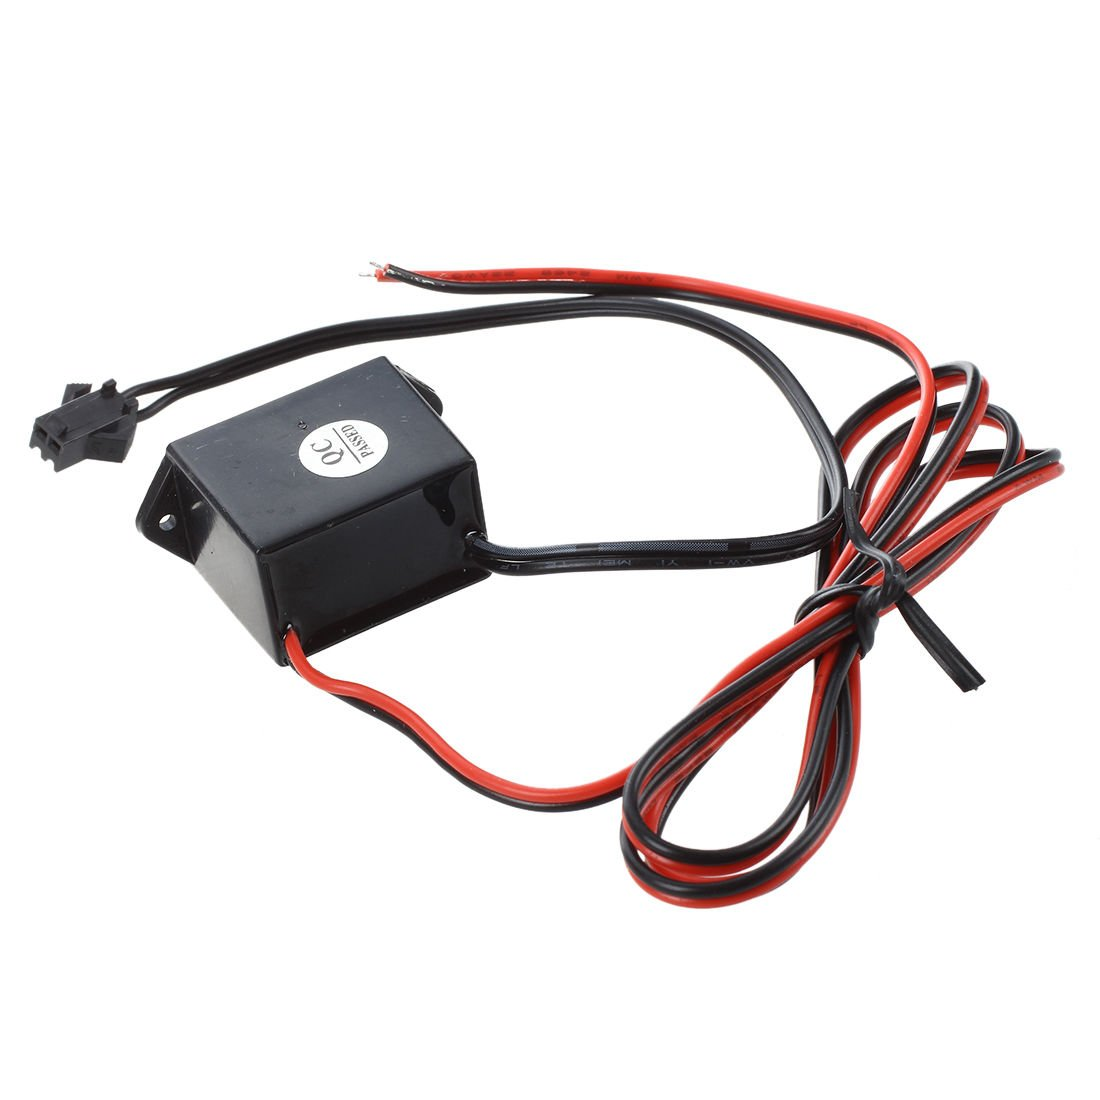 SODIAL(R) red-black cable DC 12V EL wire neon glow strip light driver unit inverter by SODIAL(R) (Image #2)